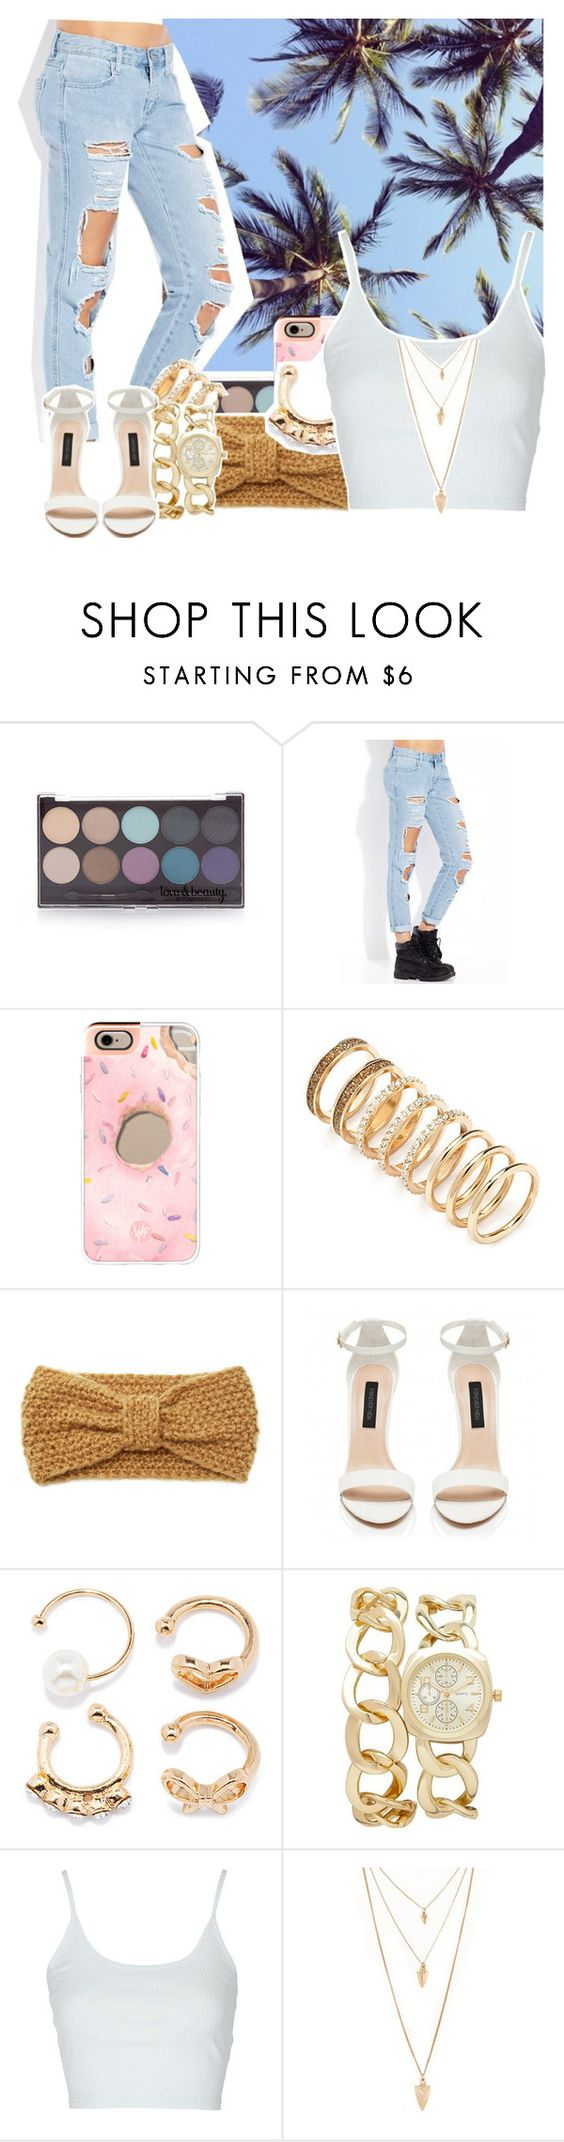 """""""Untitled #578"""" by makkisme ❤ liked on Polyvore featuring Prada, Forever 21, Casetify, Forever New and Topshop"""